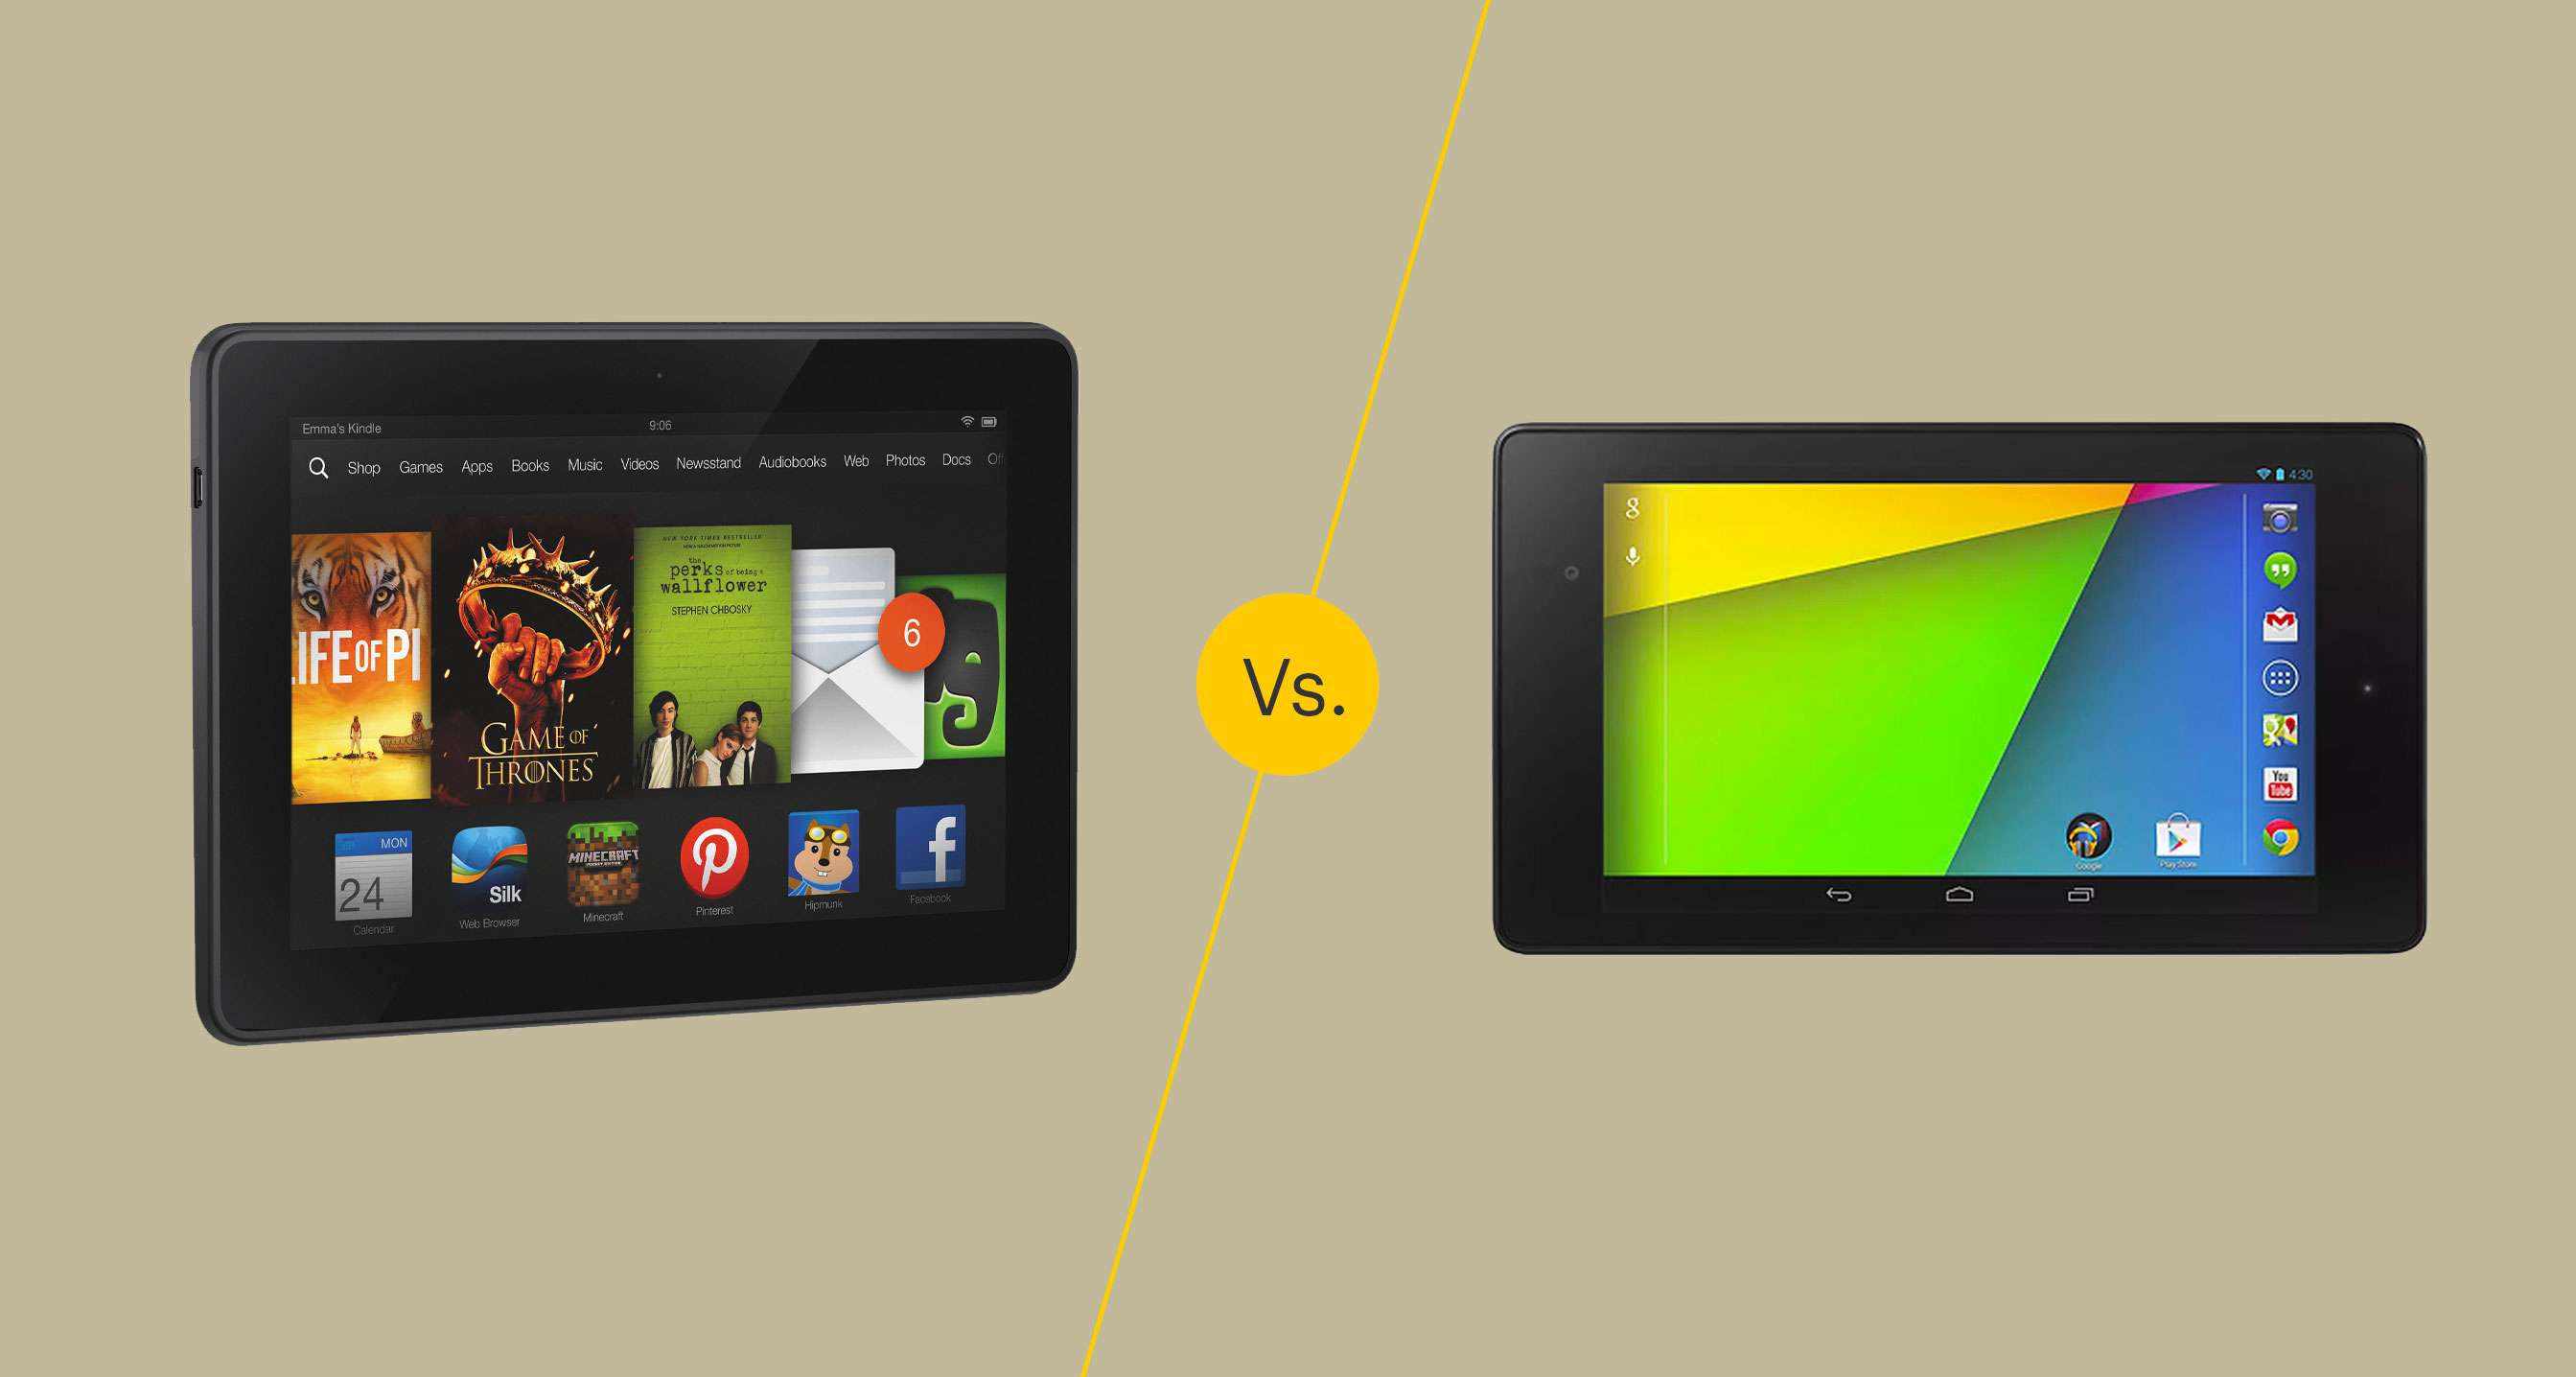 Kindle Fire Hdx 7 Vs Nexus 7